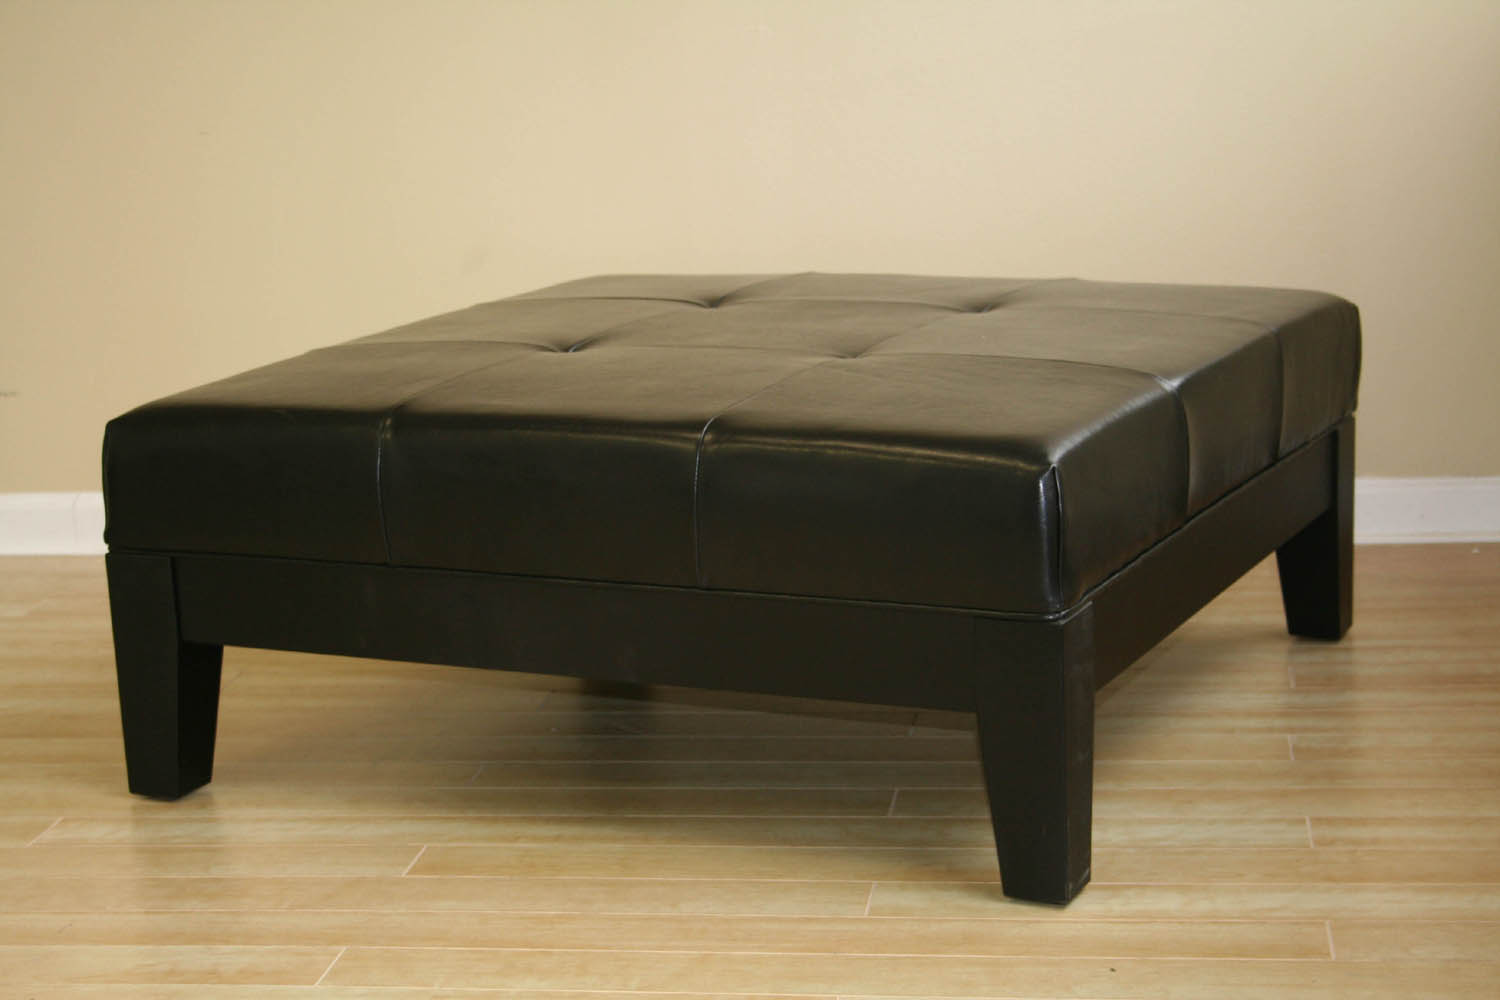 Black ottoman leather cocktail ottoman modern coffee table living room furniture ebay Black ottoman coffee table